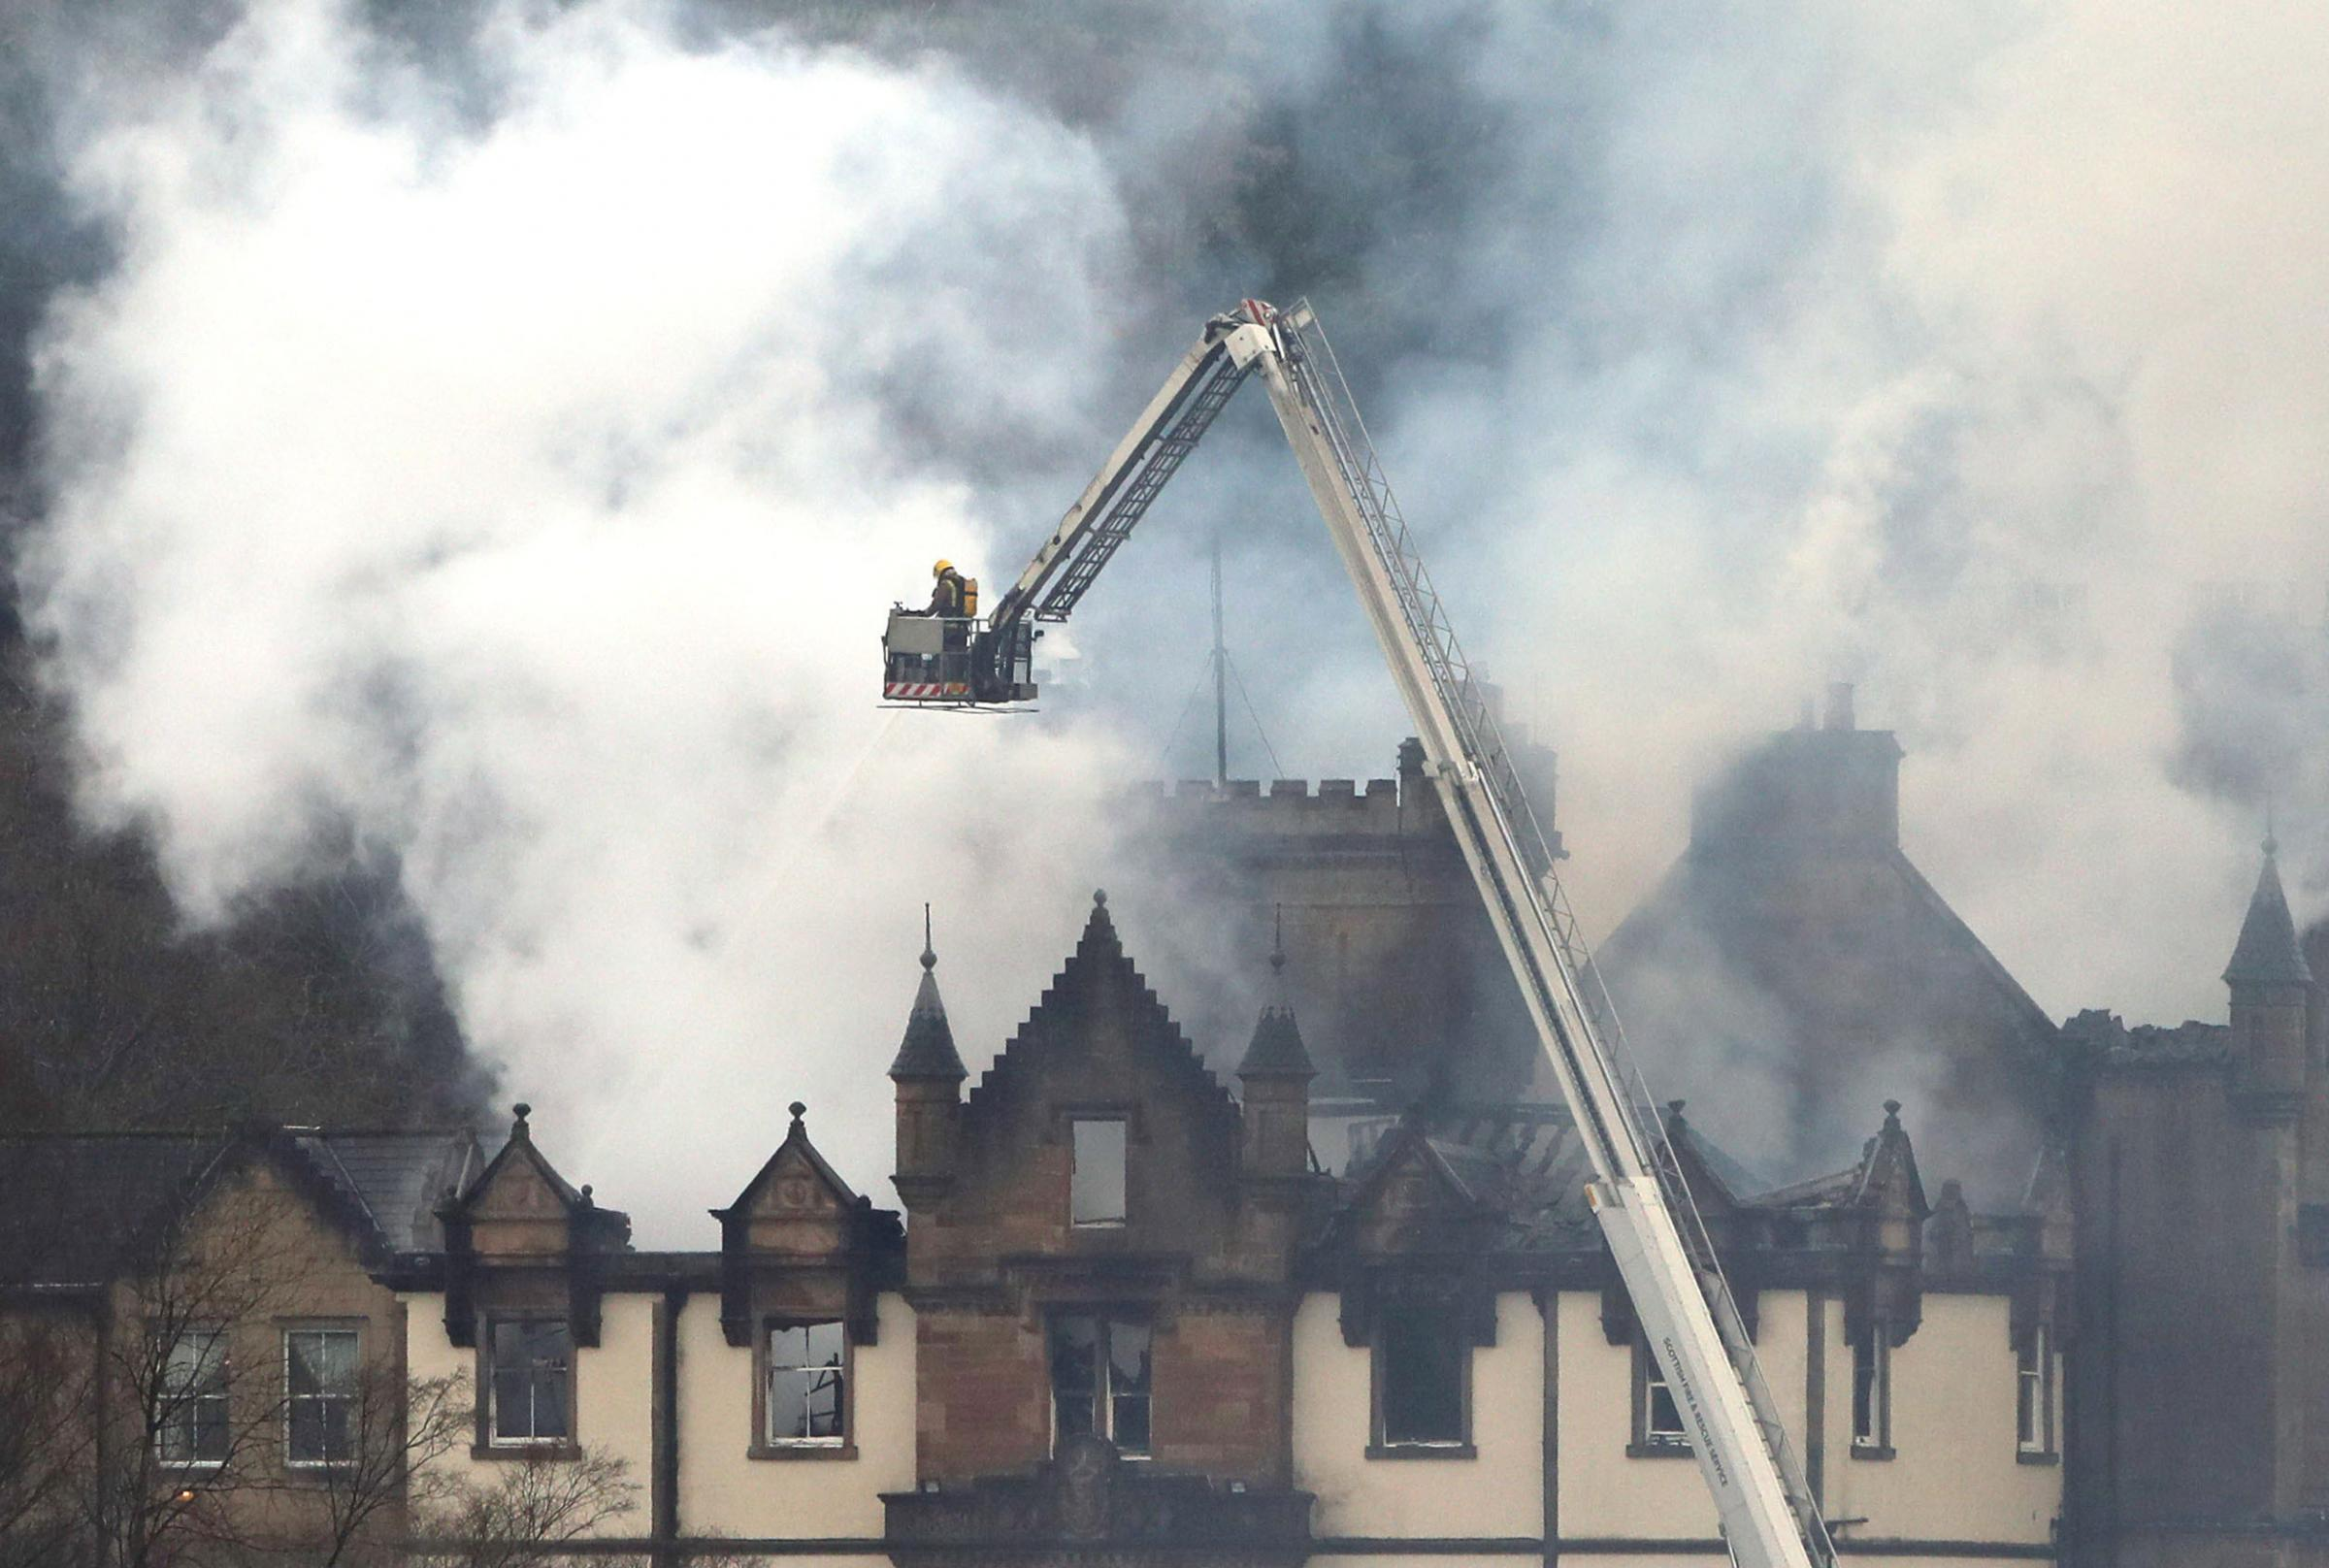 Lord Advocate reveals that it is not possible to say when decision will be made about future proceedings into Cameron House fatal fire inquiry